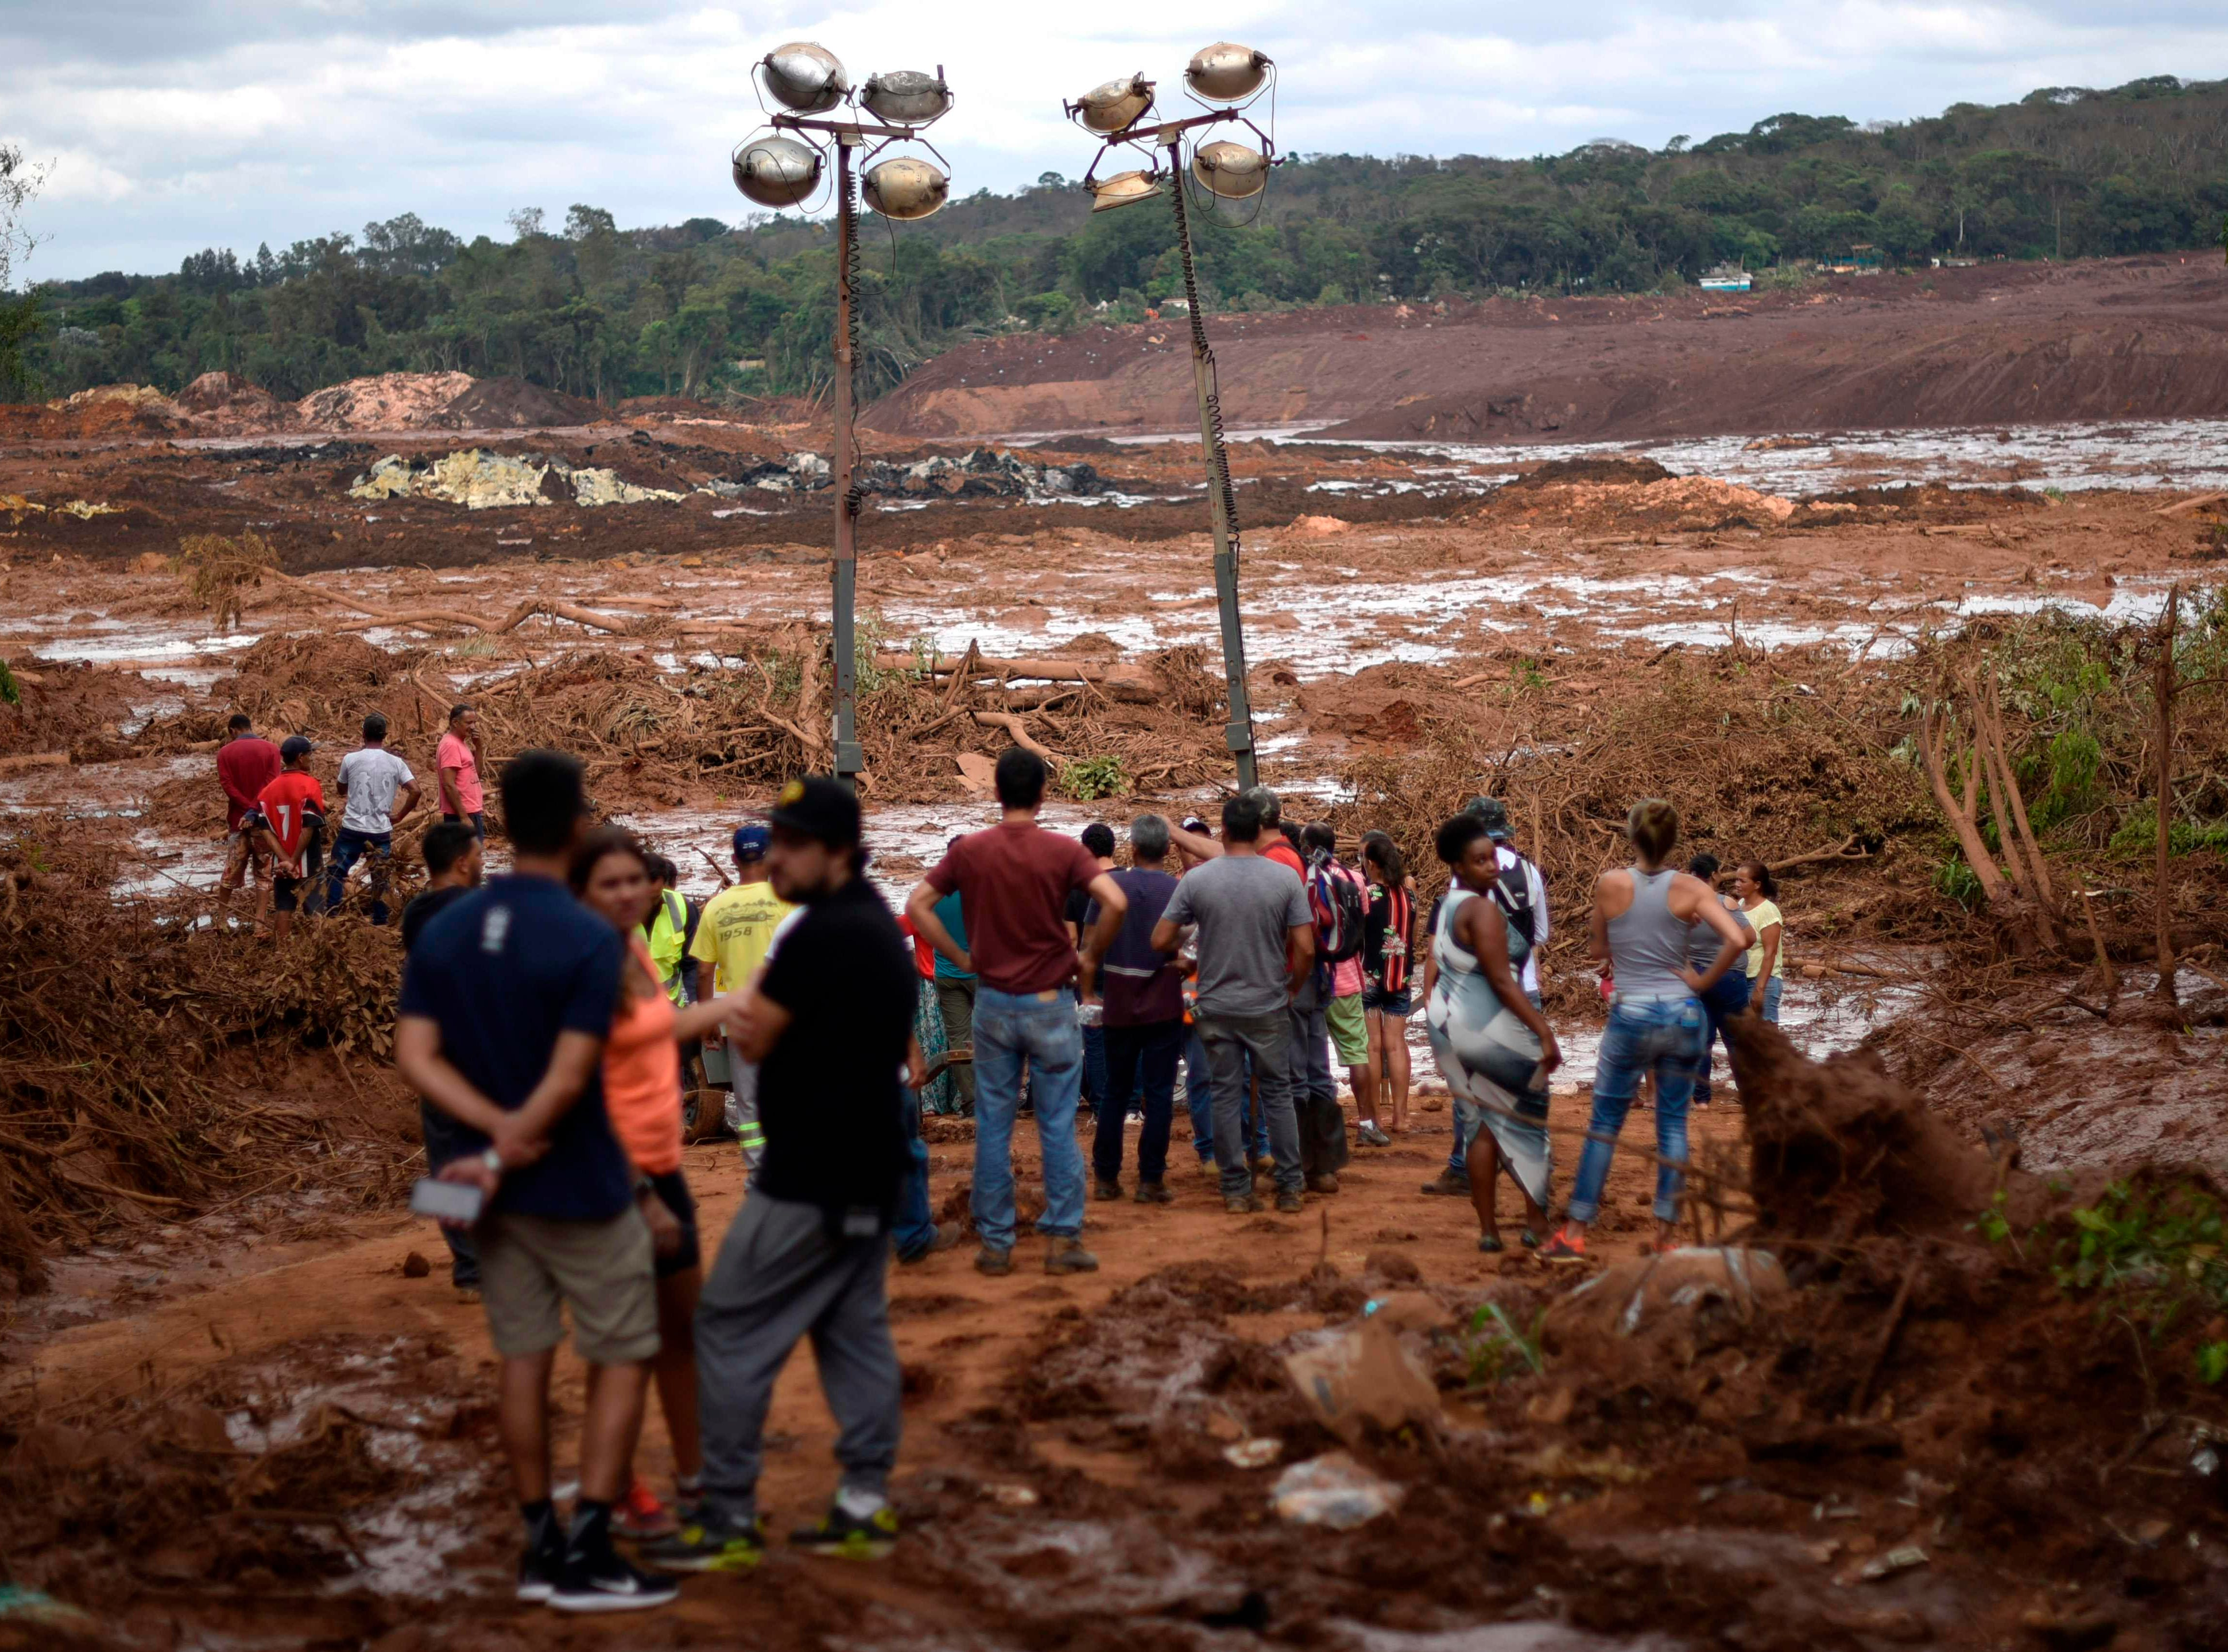 People look at the damage after the collapse of a dam that belonged to Brazil's giant mining company Vale, near the town of Brumadinho in southeastern Brazil, on Jan. 26, 2019.